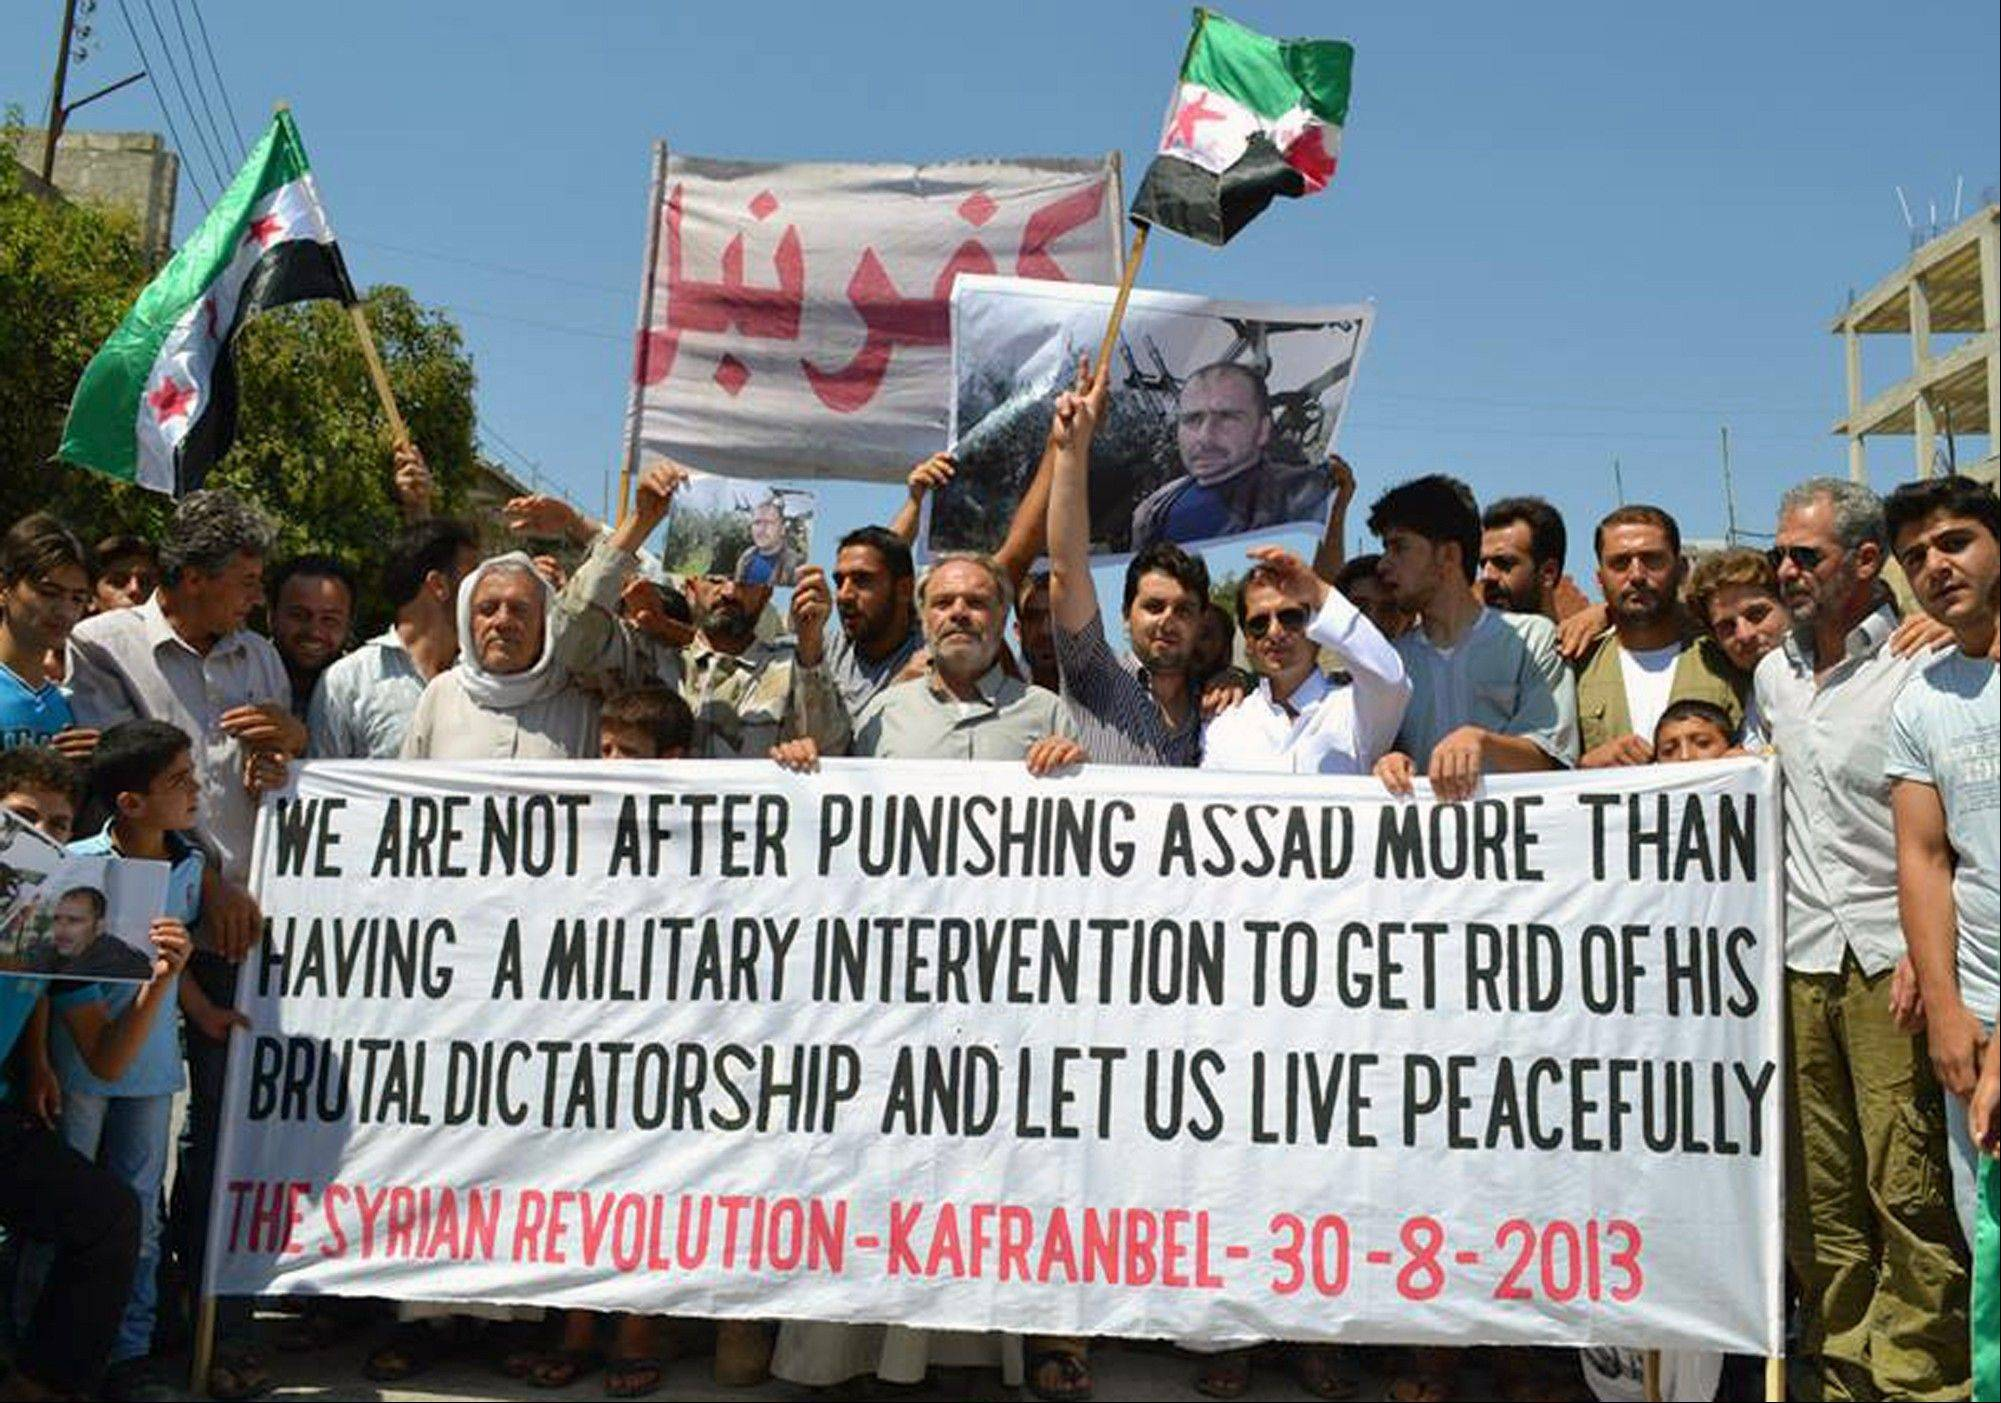 Anti-Syrian regime protesters holding a banner and Syrian revolution flags, during a demonstration in Kafr Nabil town, in Idlib province, northern Syria, Friday, Aug. 30, 2013. United Nations experts are investigating the alleged use of chemical weapons in Syria as the United States and its allies prepare for the possibility of a punitive strike against President Bashar Assad's regime, blamed by the Syrian opposition for the attack.